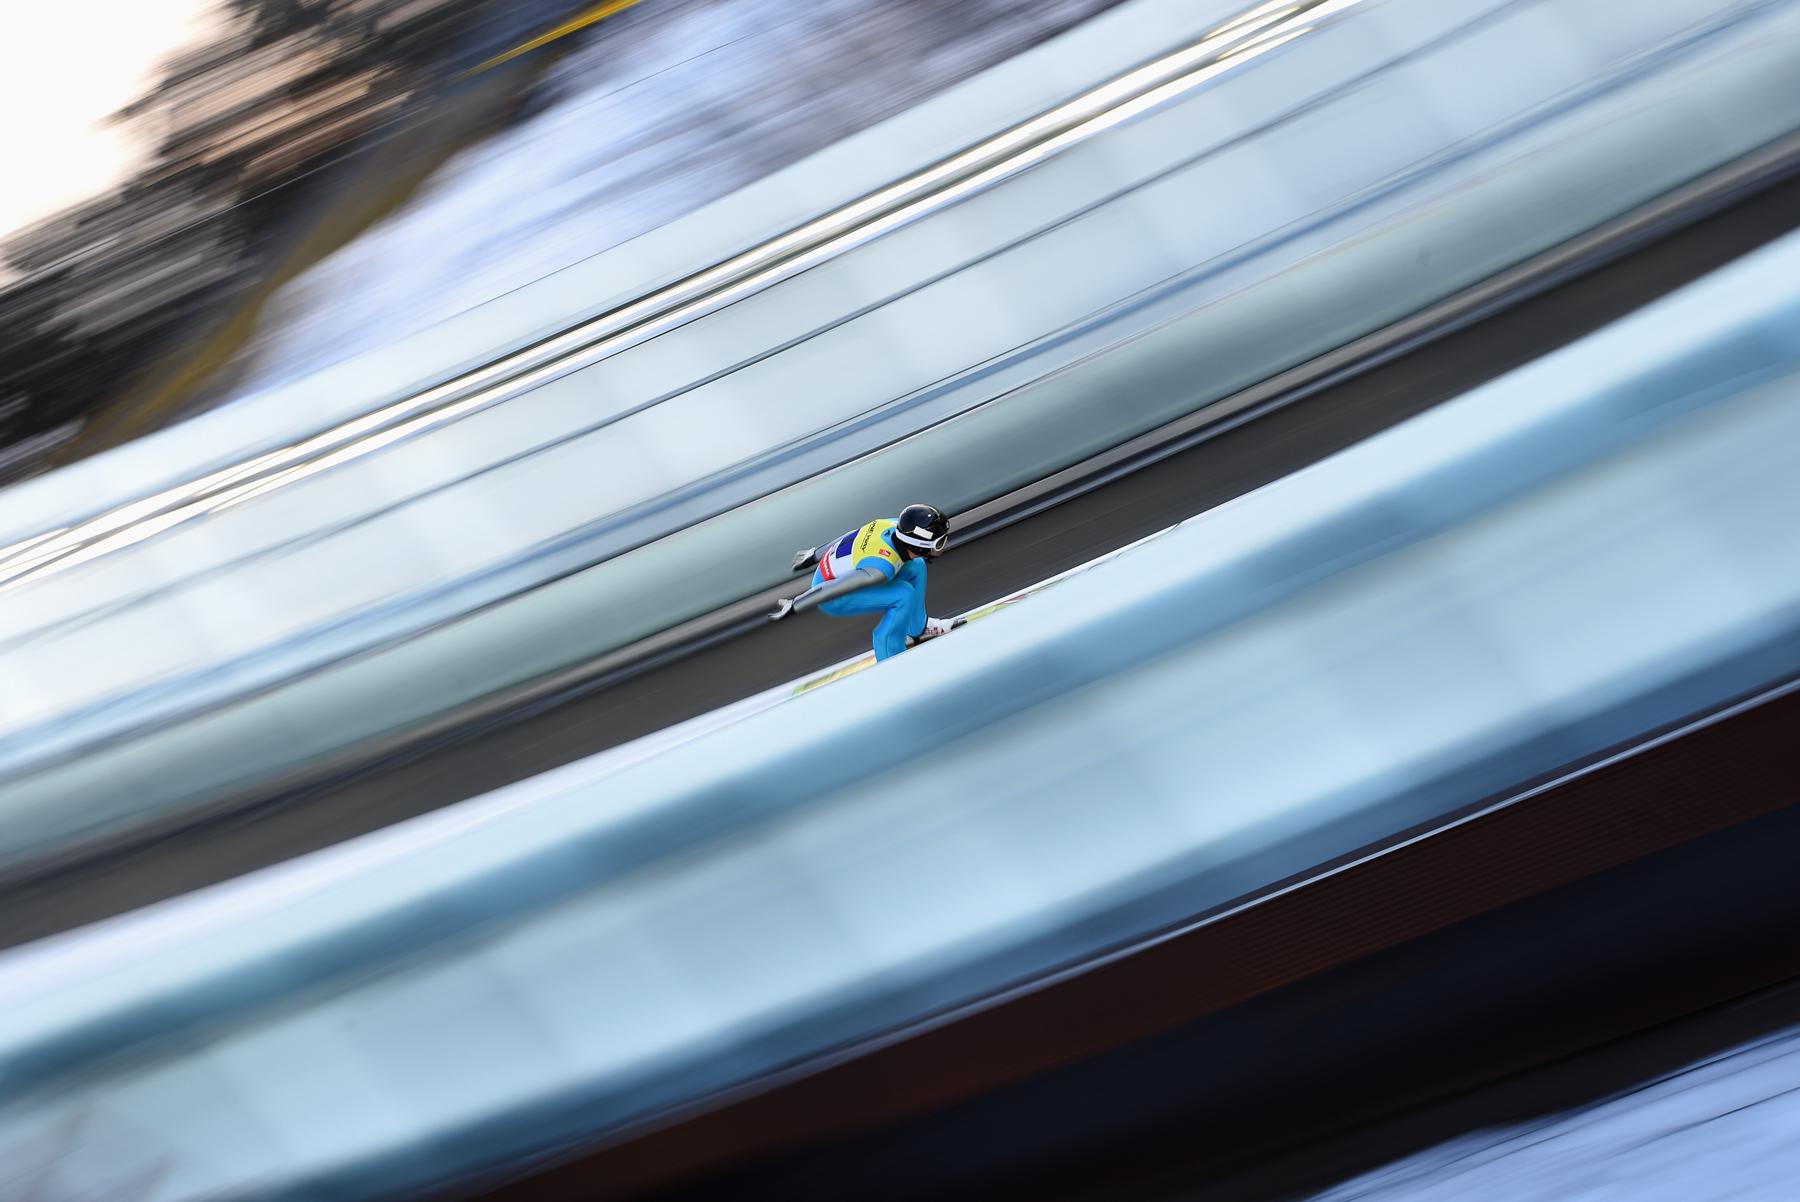 Nordic Combined & Ski Jumping Athlete Membership